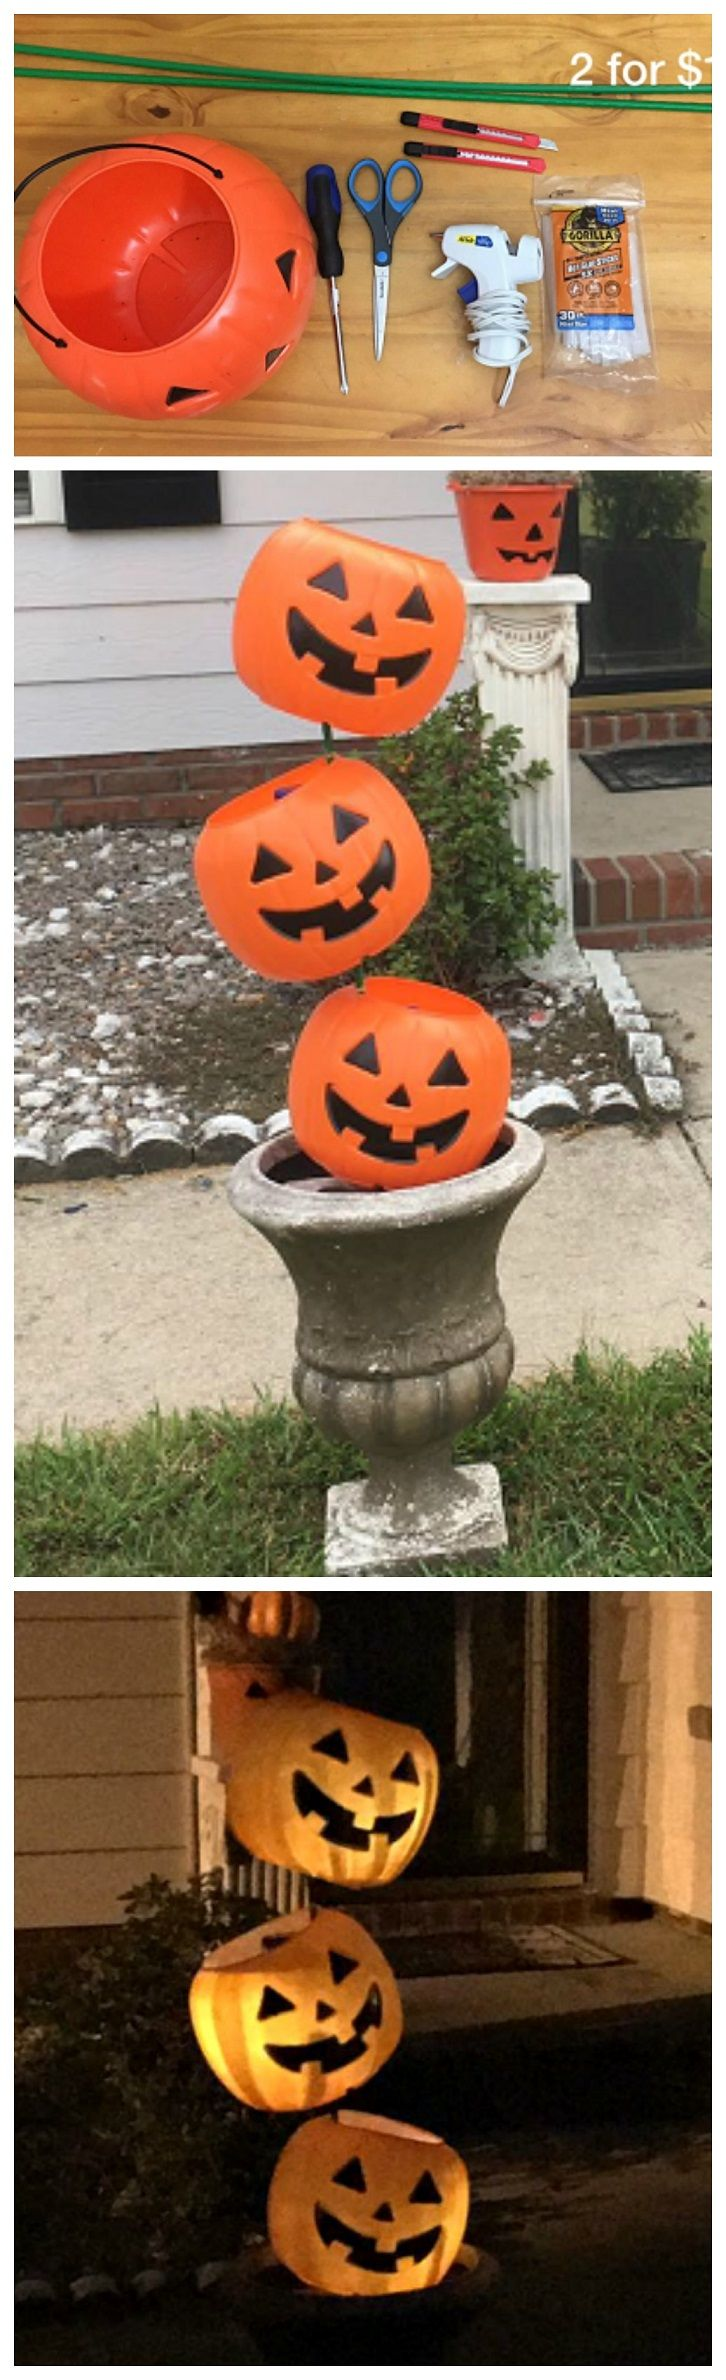 make a plastic pumpkin pail tipsy decoration for halloween such a cheap and easy craft - Cheap Easy Halloween Decorations